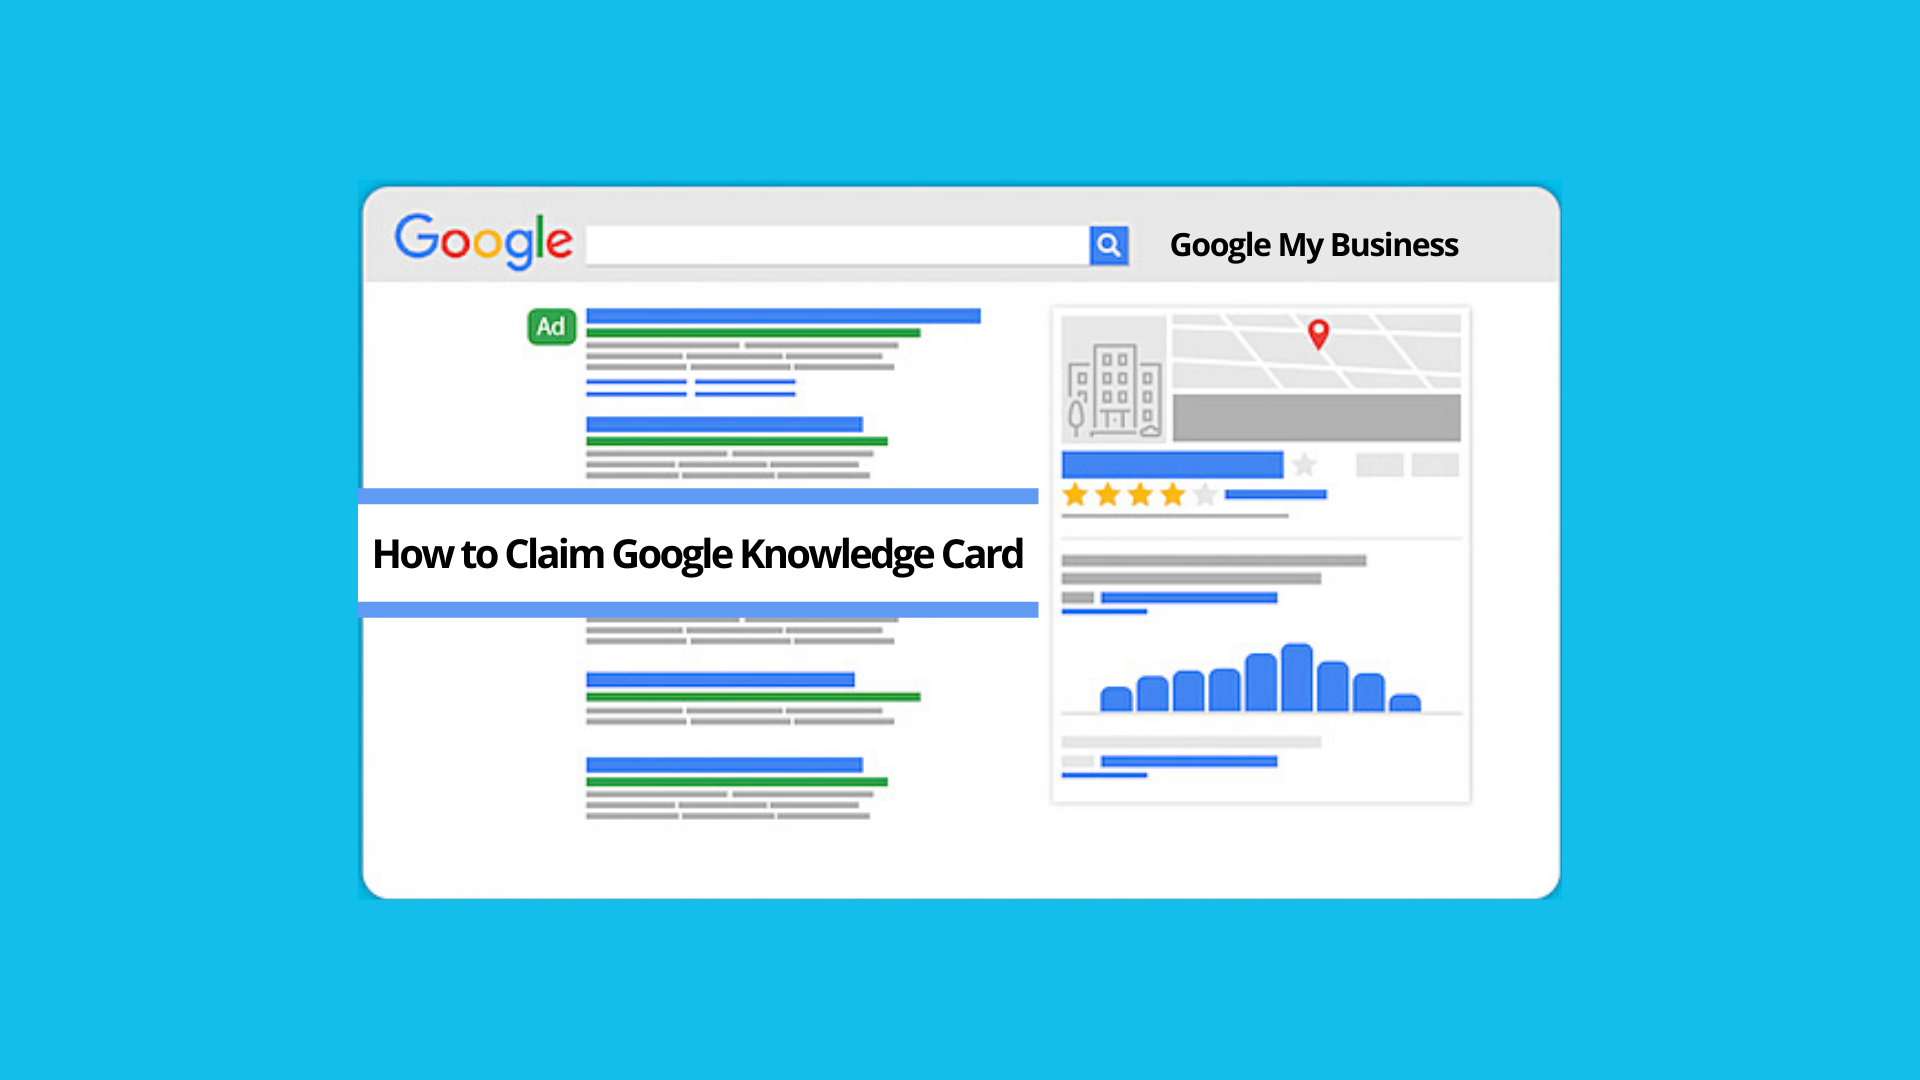 How to Claim Google Knowledge Card